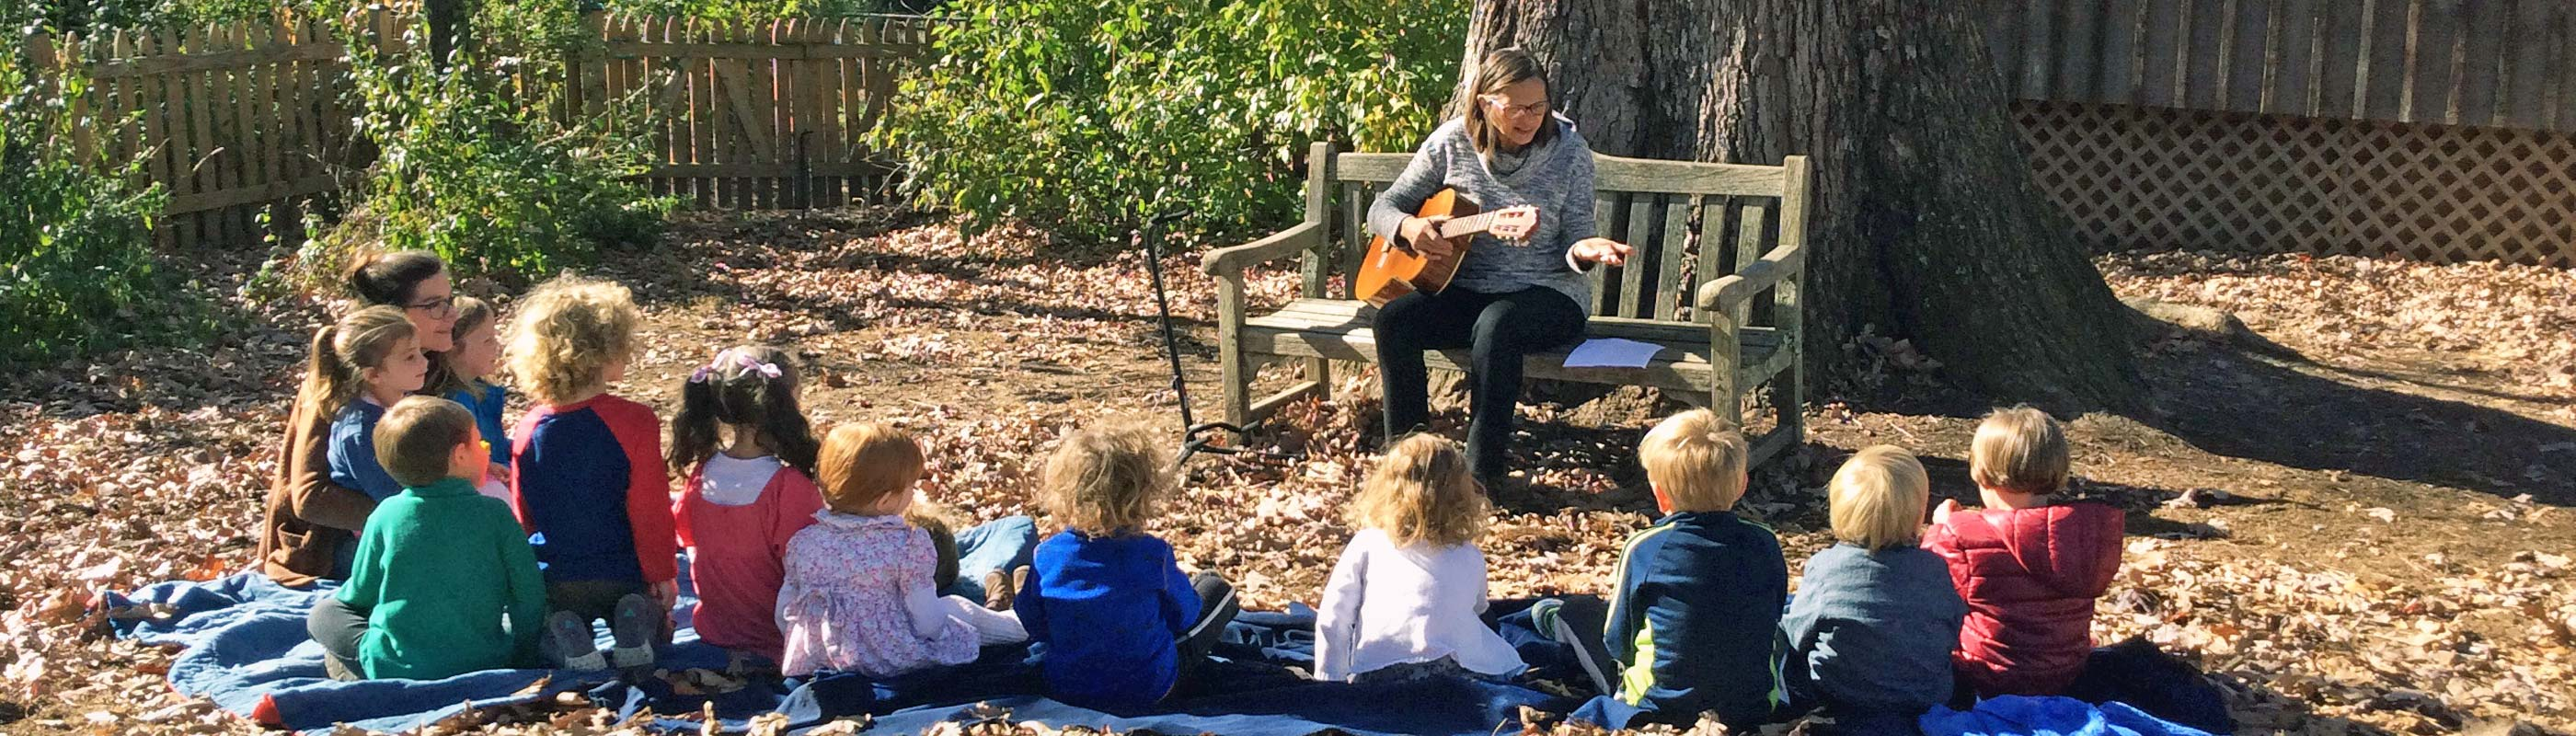 Marjo With Kids Outside Guitar